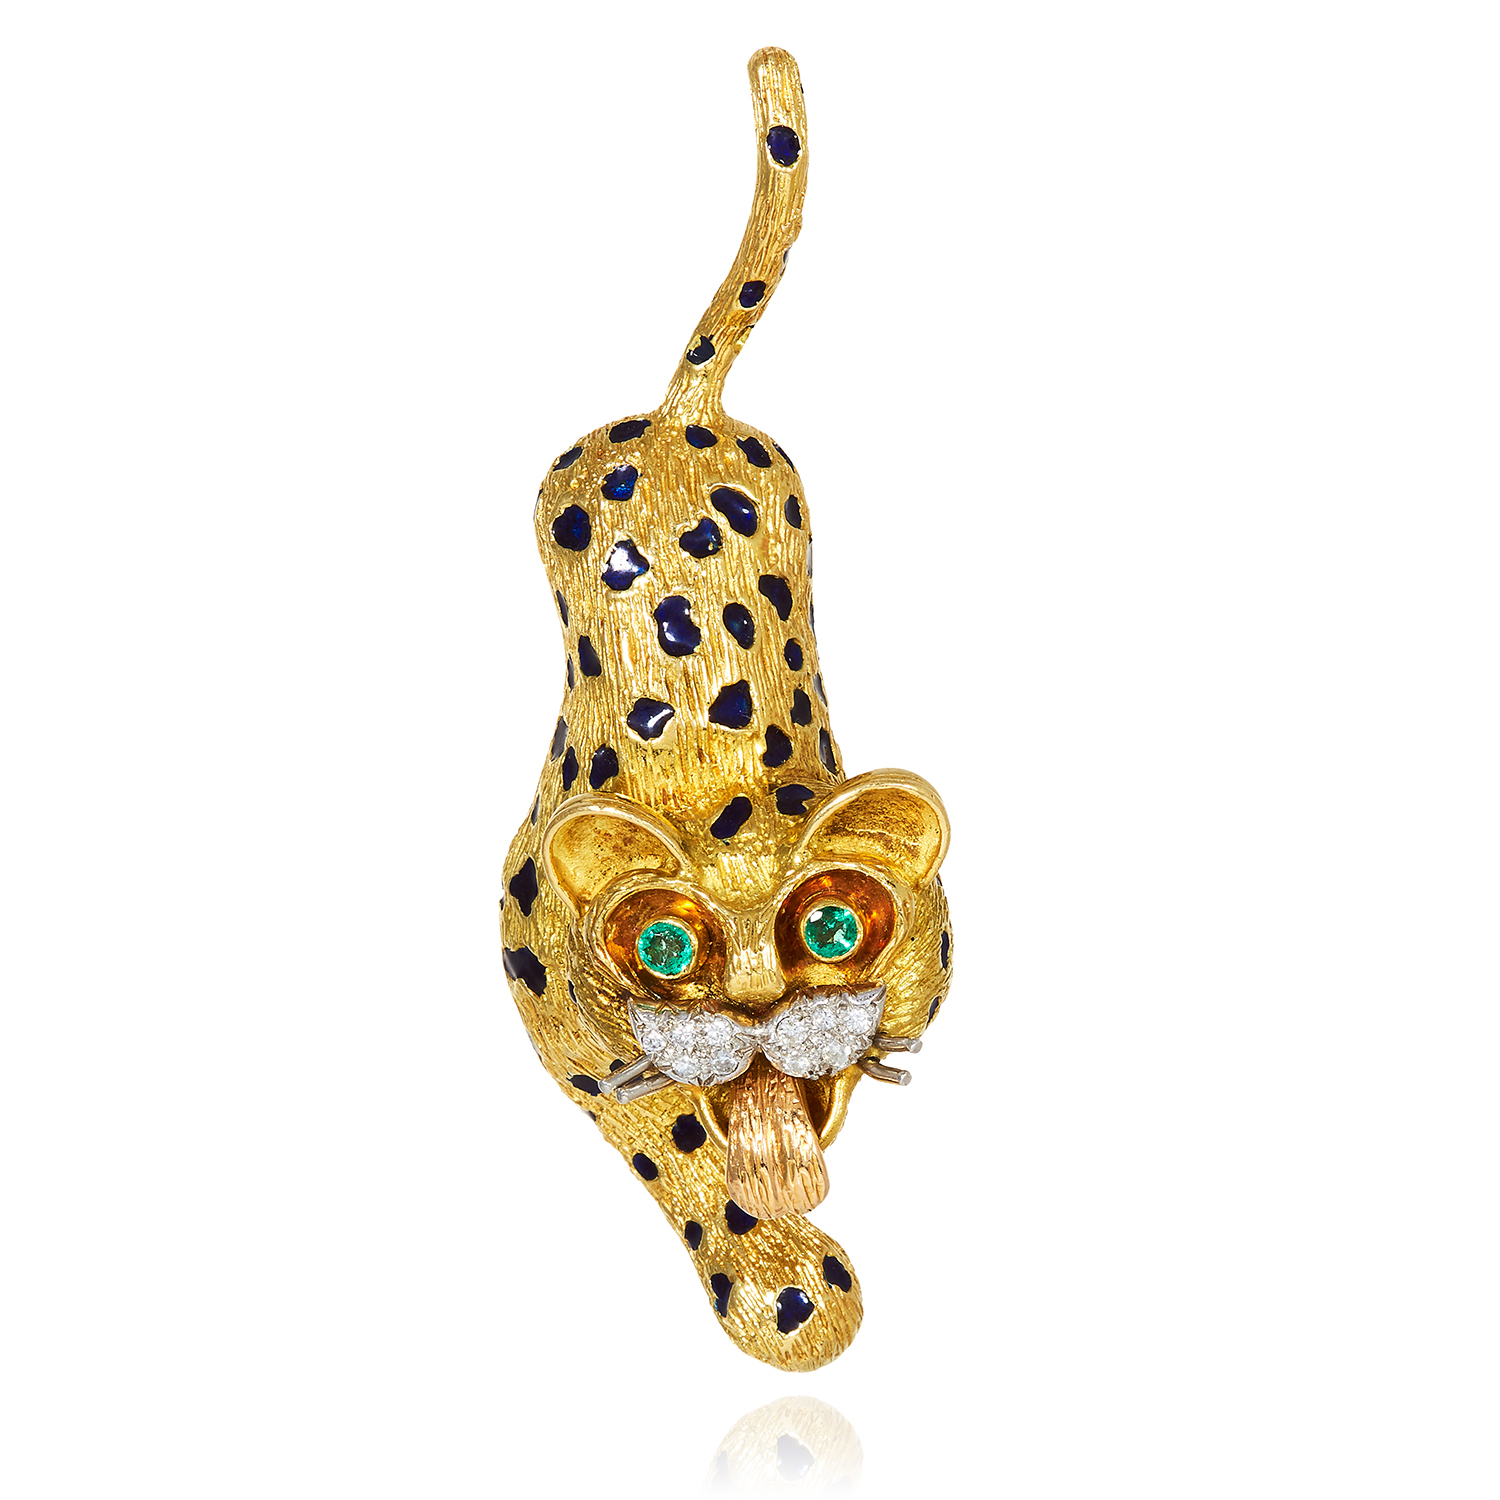 Los 61 - AN EMERALD, DIAMOND AND ENAMEL PANTHER BROOCH, KUTCHINSKY, CIRCA 1967 in 18ct yellow gold,